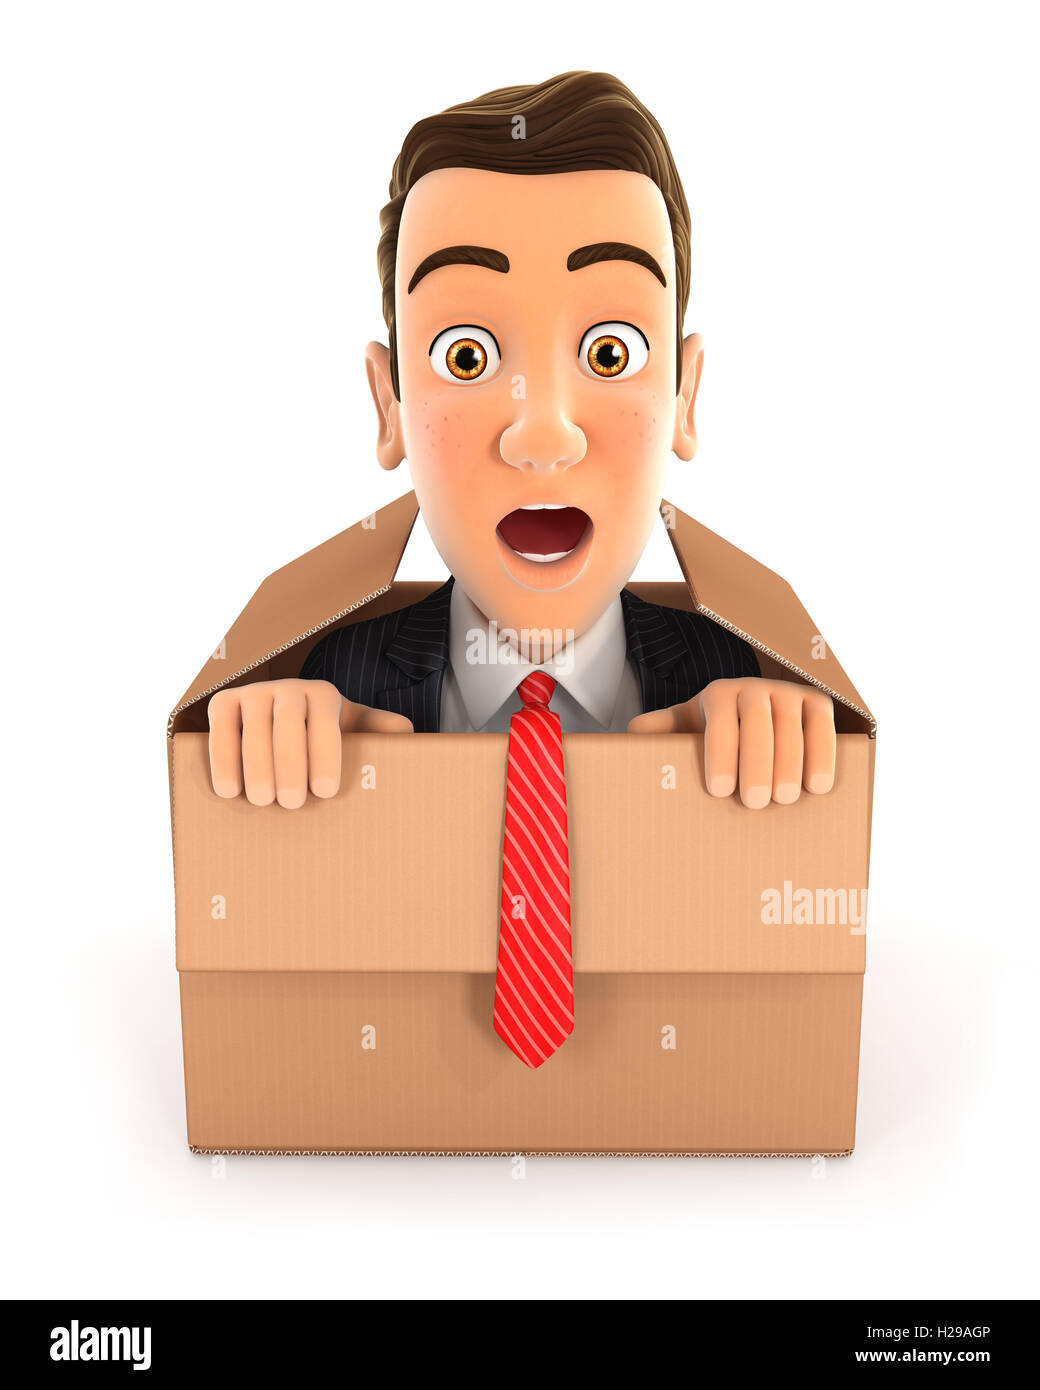 3d businessman coming out of the box, illustration with isolated white background Stock Photo